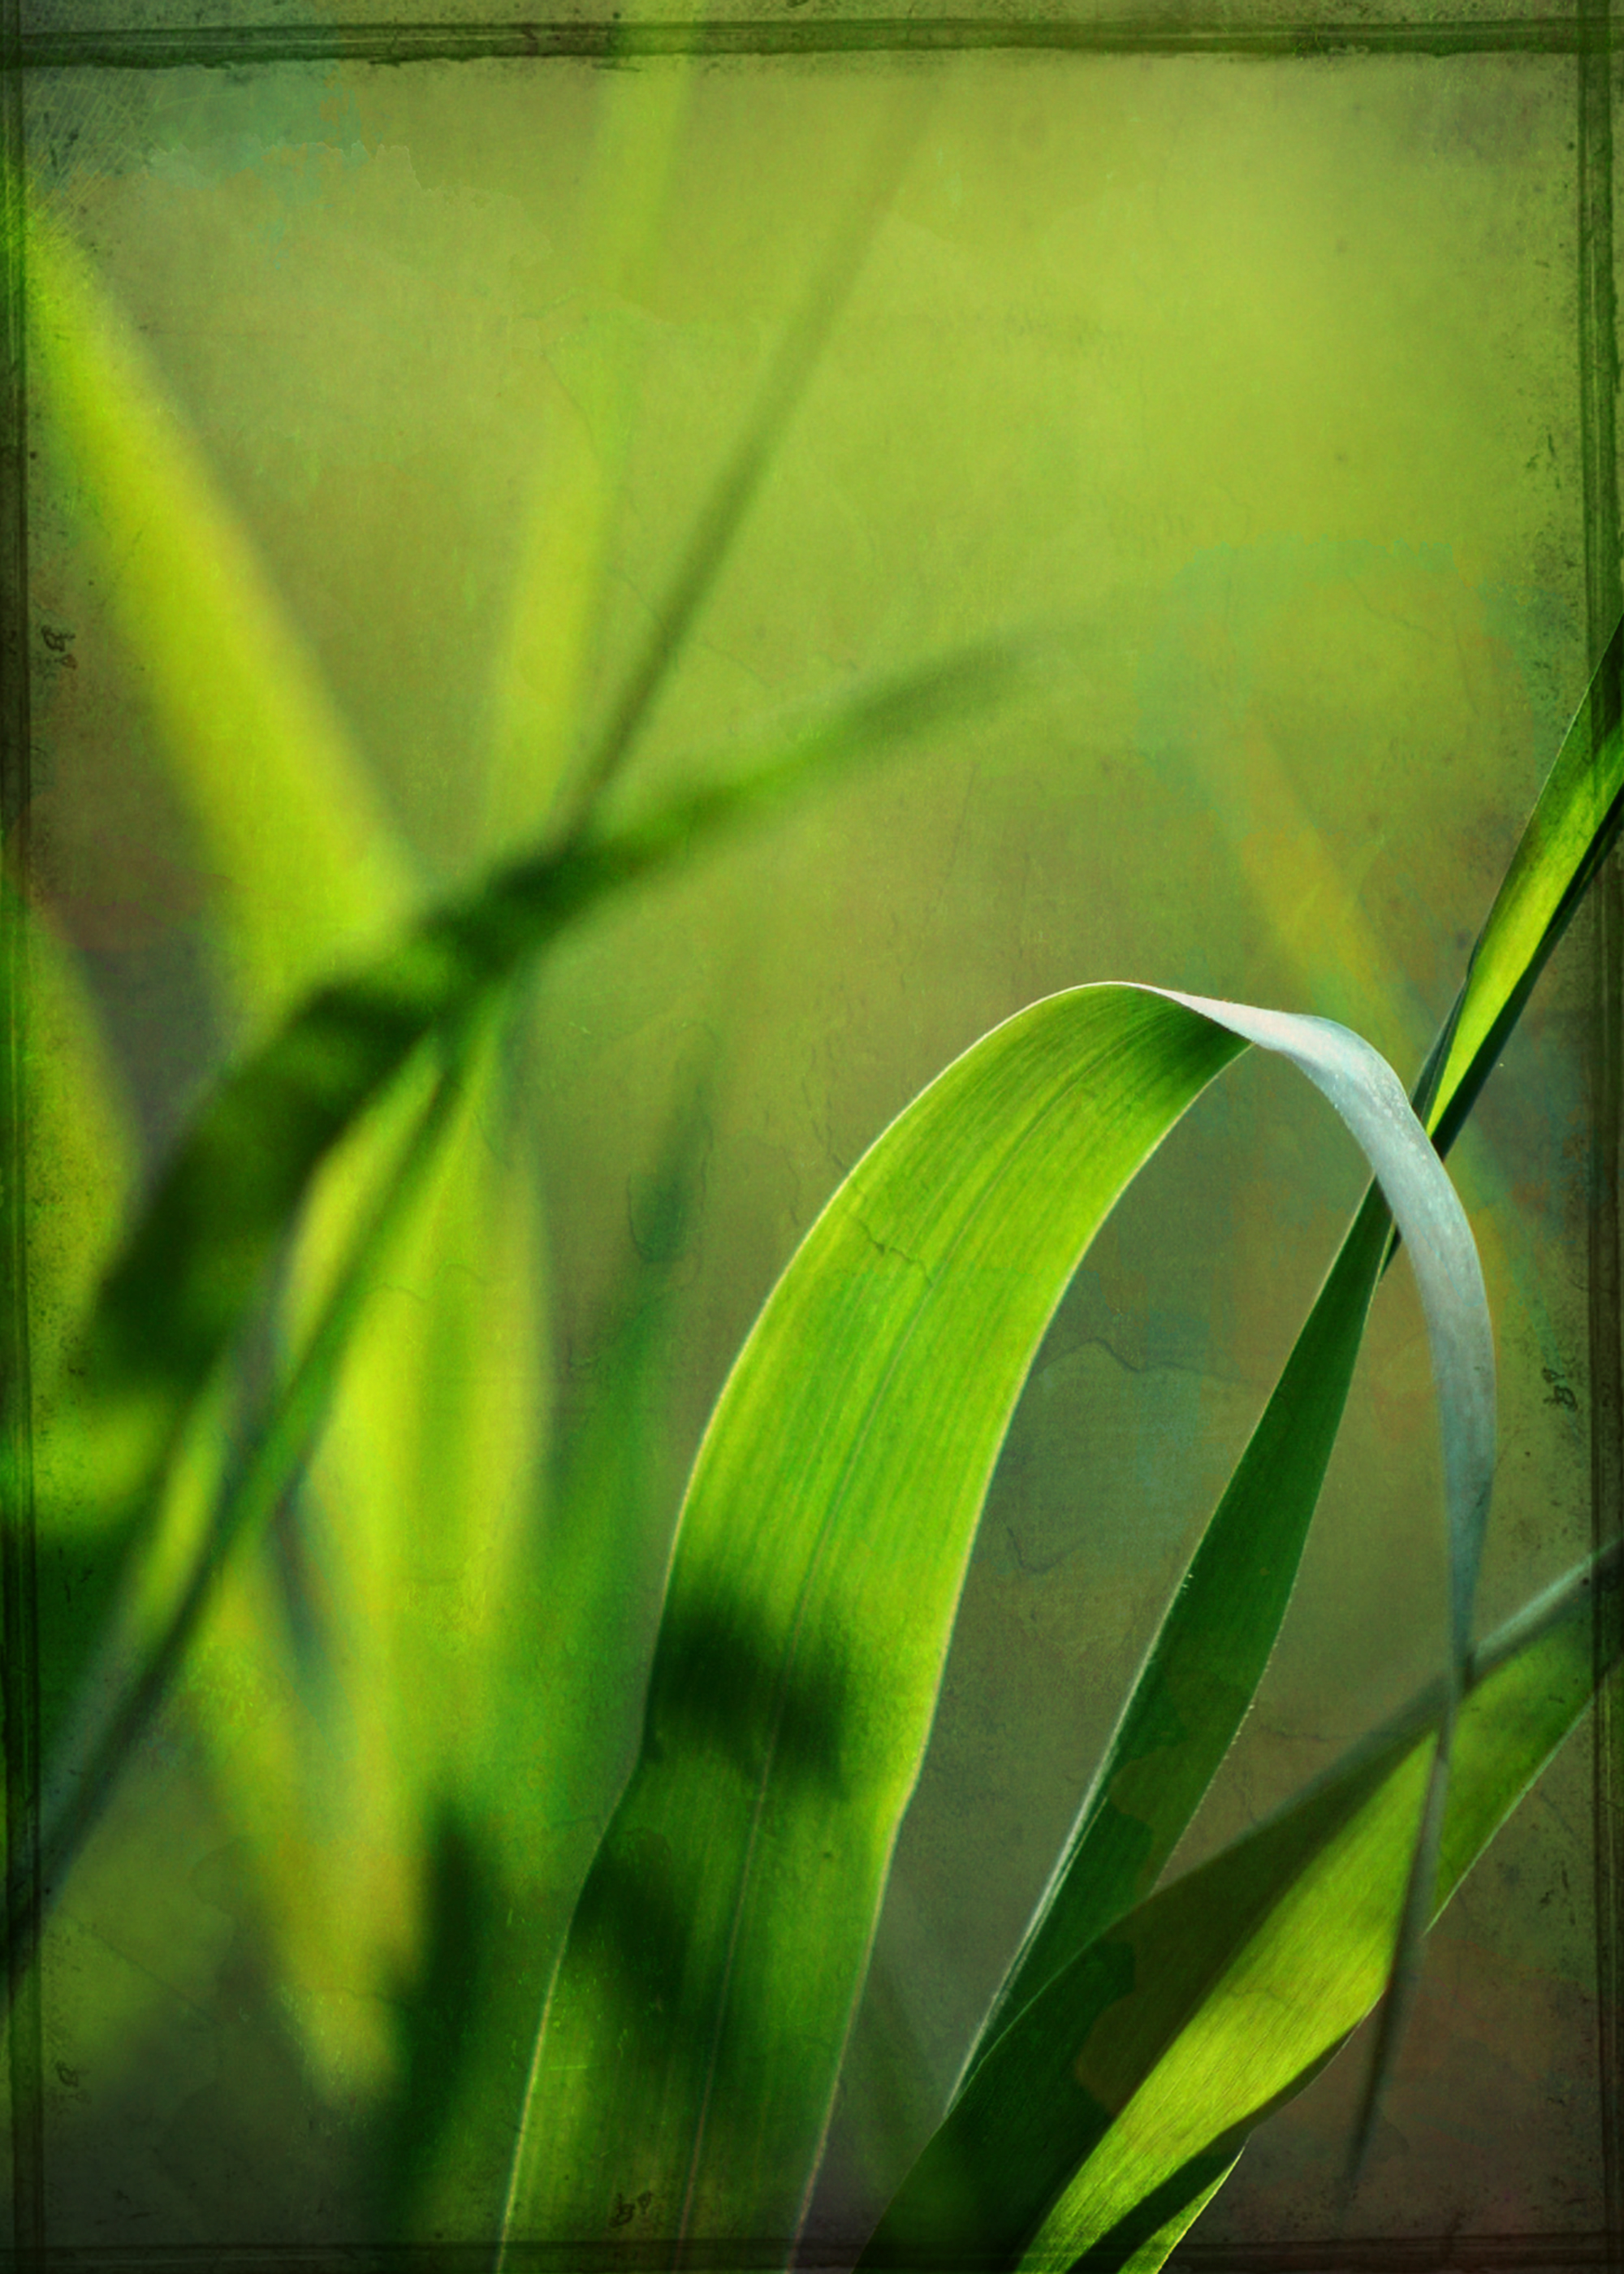 Green grass stock image free